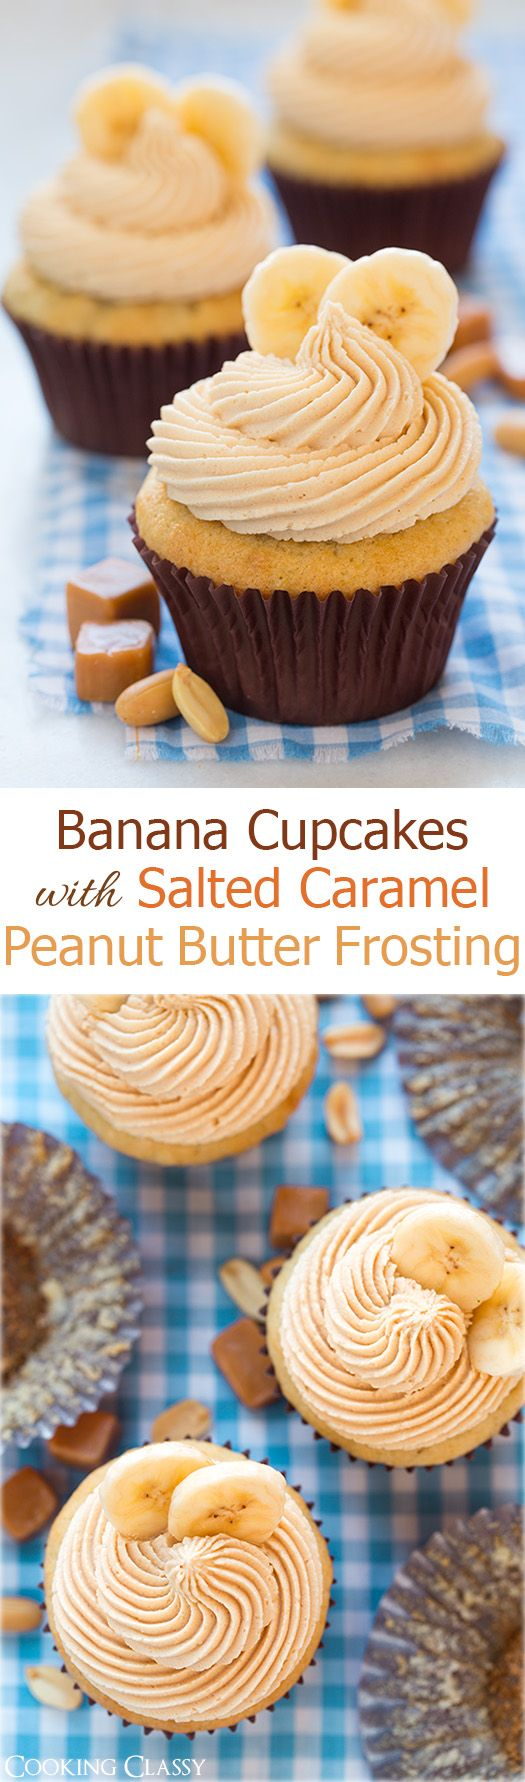 Banana Cupcakes with Salted Caramel Peanut Butter Frosting - These cupcakes are…